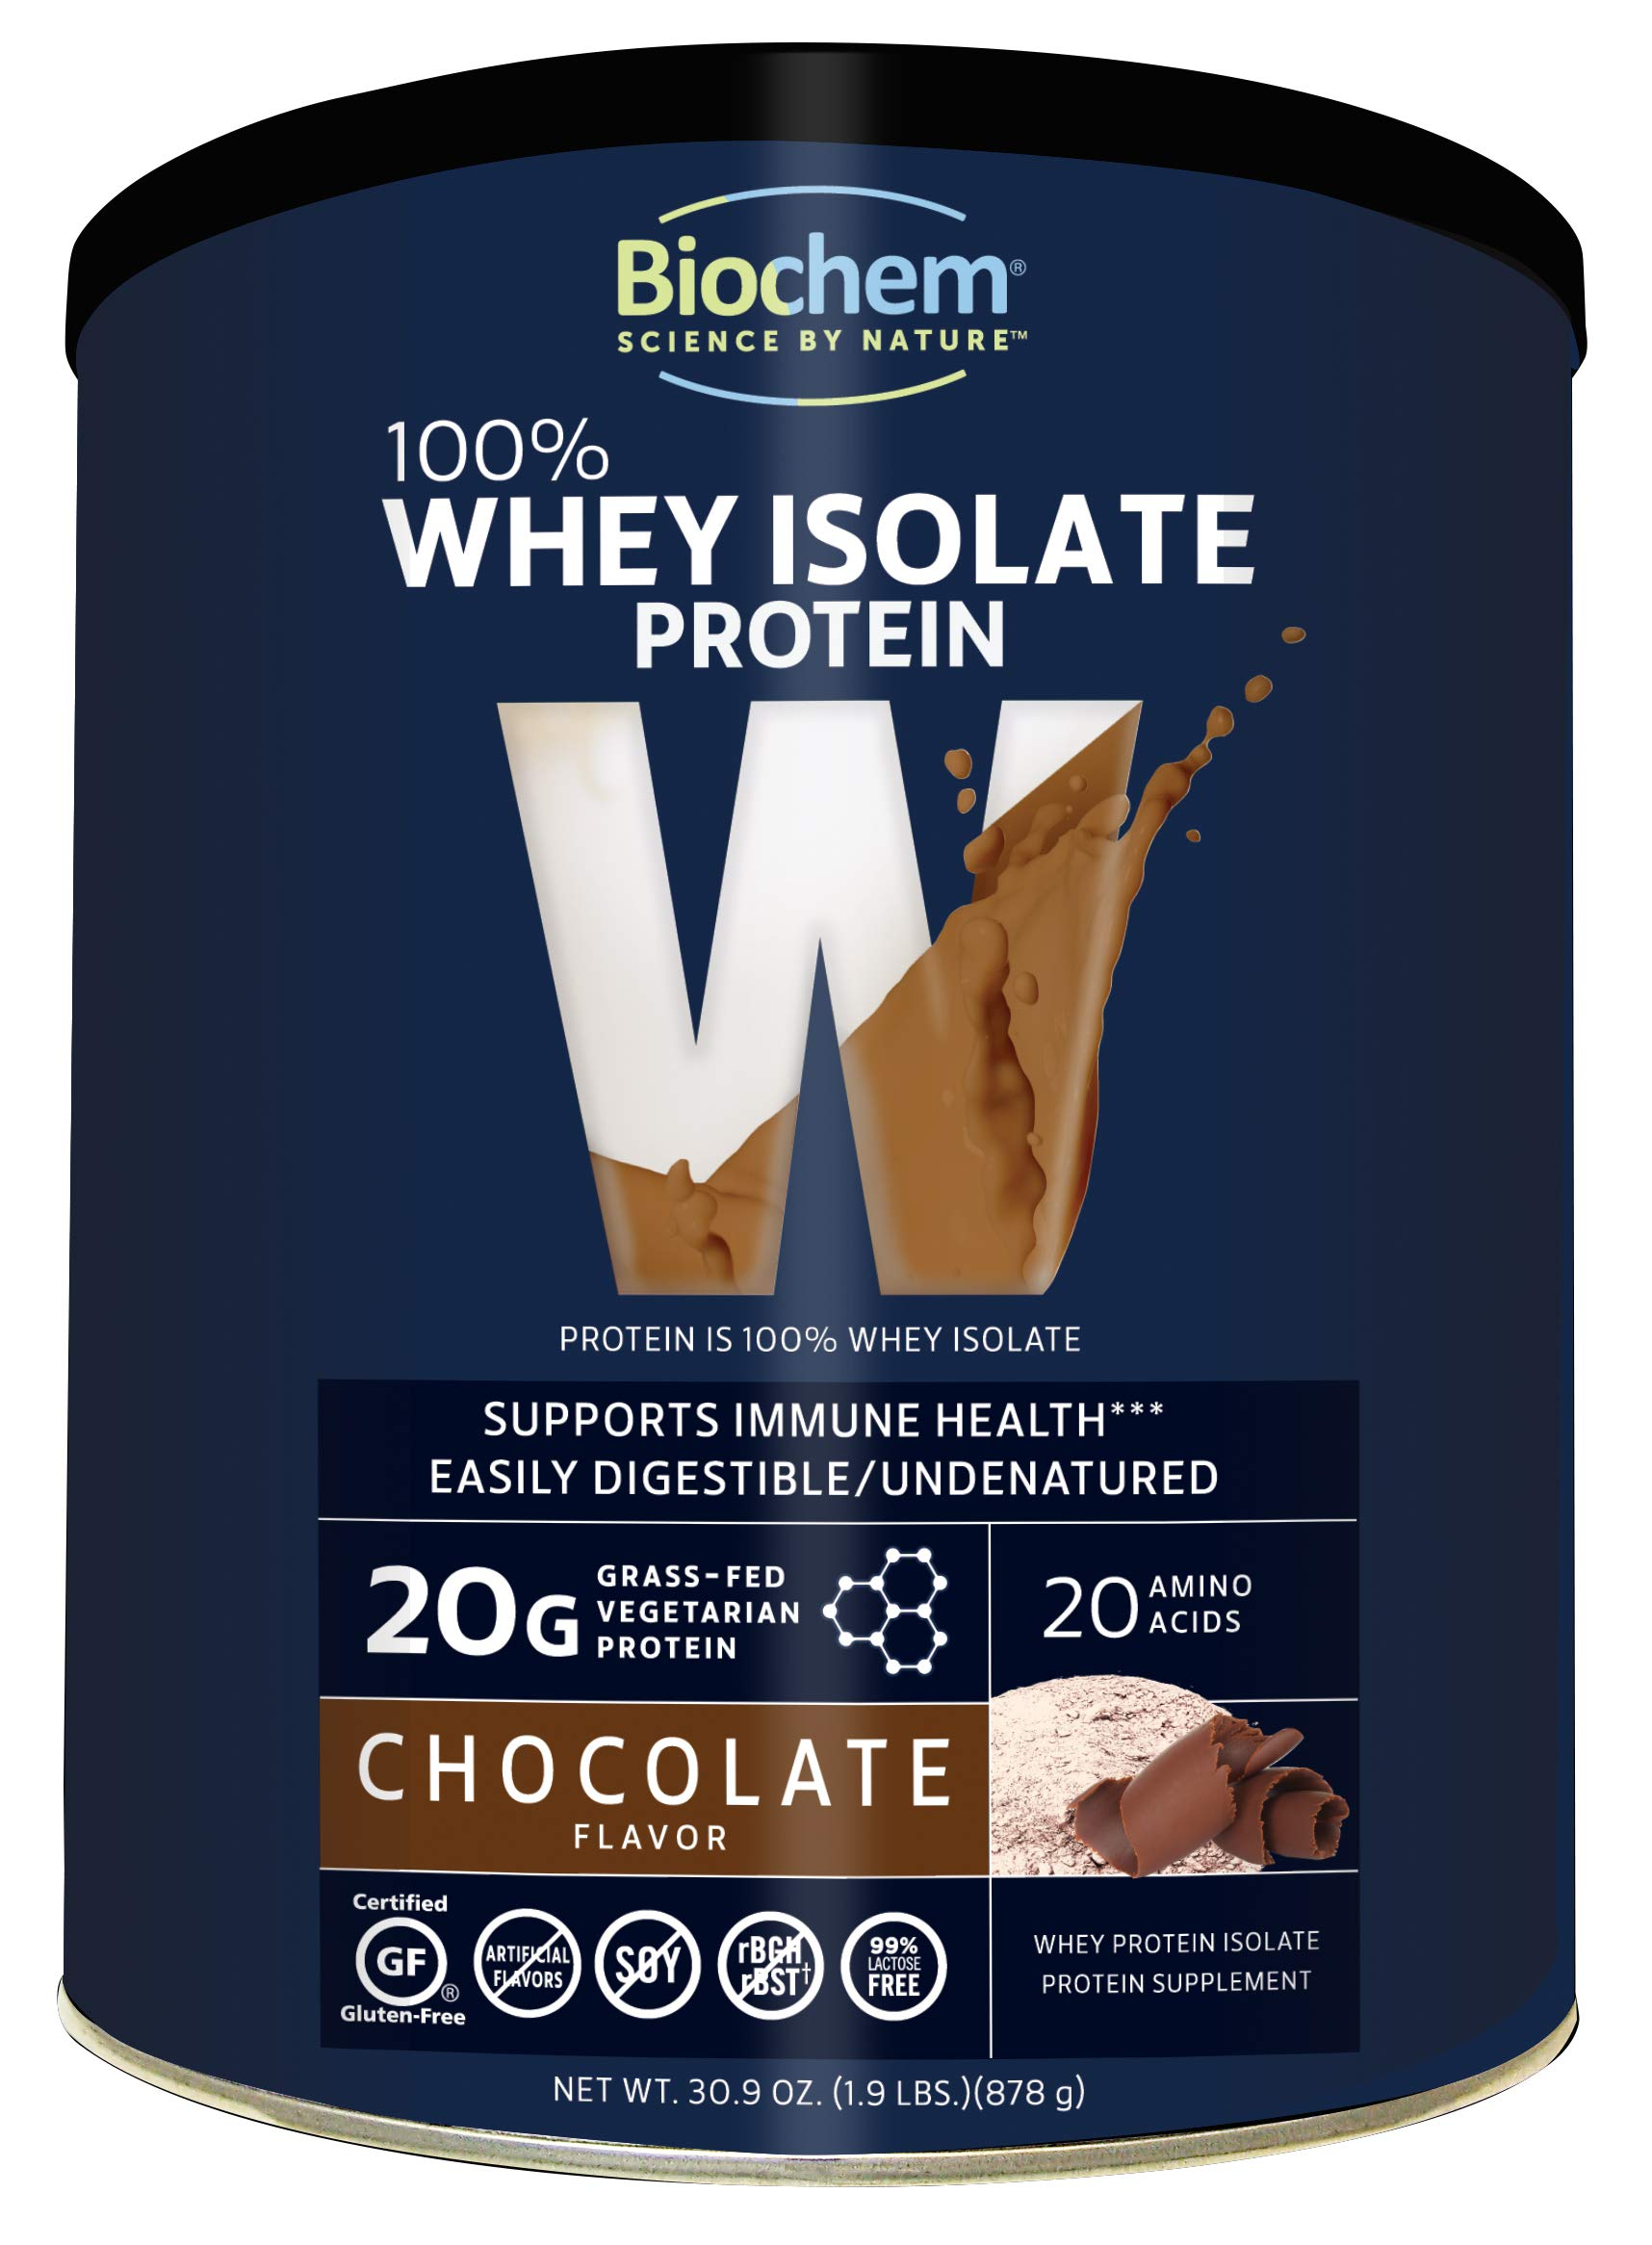 Biochem 100% Whey Isolate Protein - Chocolate Flavor - 30.9 Ounce - Supports Immune Health - Easily Digestible - Refreshing Taste - 20g Vegetarian Protein - Amino Acids by Biochem